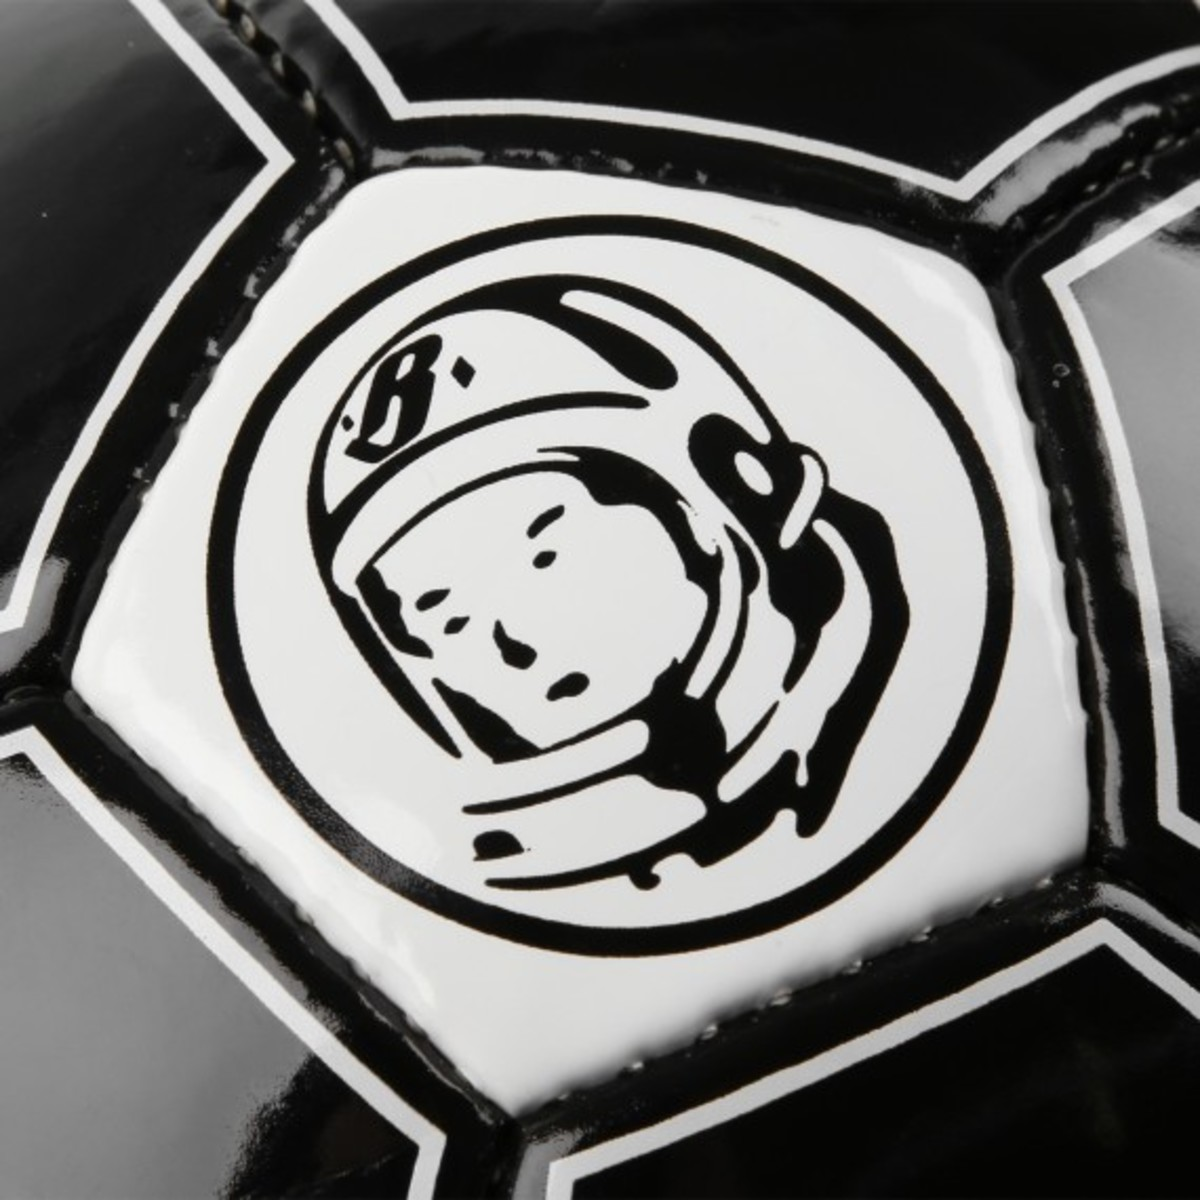 billionaire-boys-club-soccer-ball-07